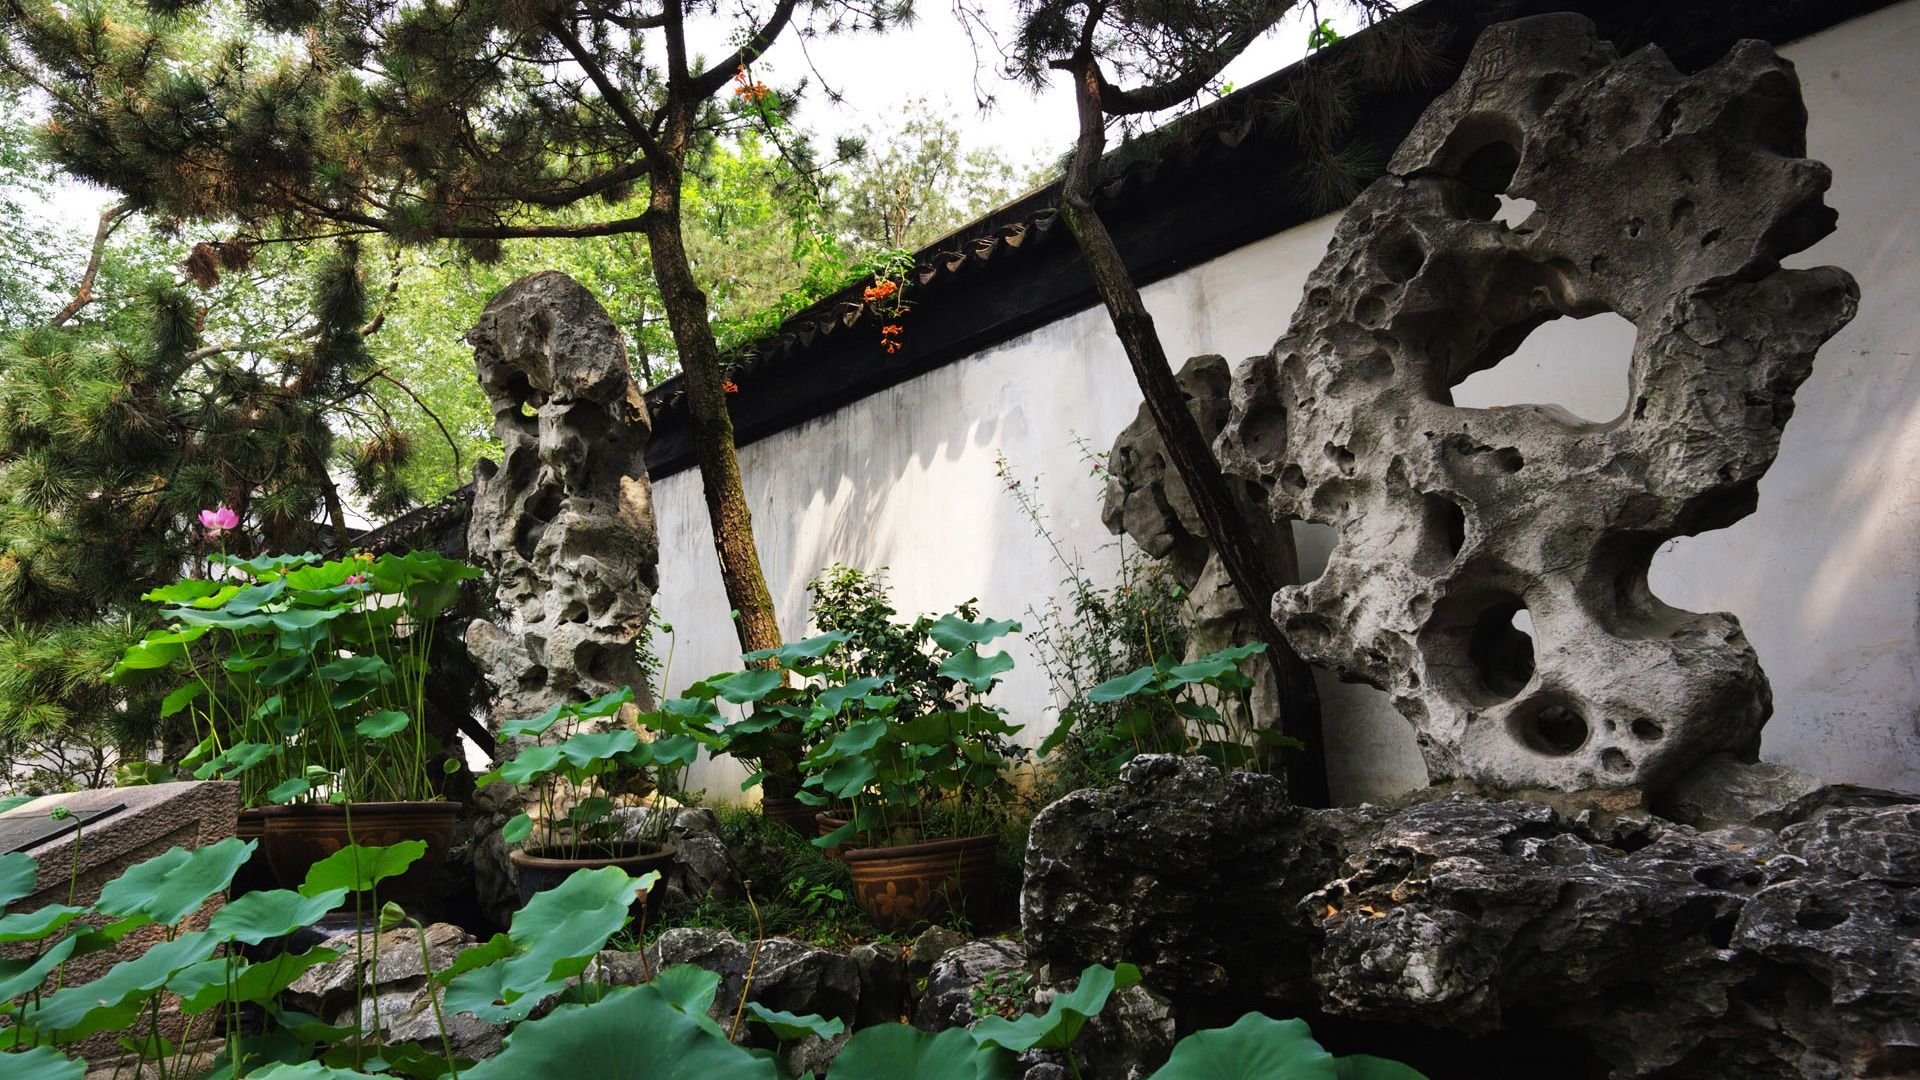 Chinese Garden Architecture for 1920 x 1080 HDTV 1080p resolution